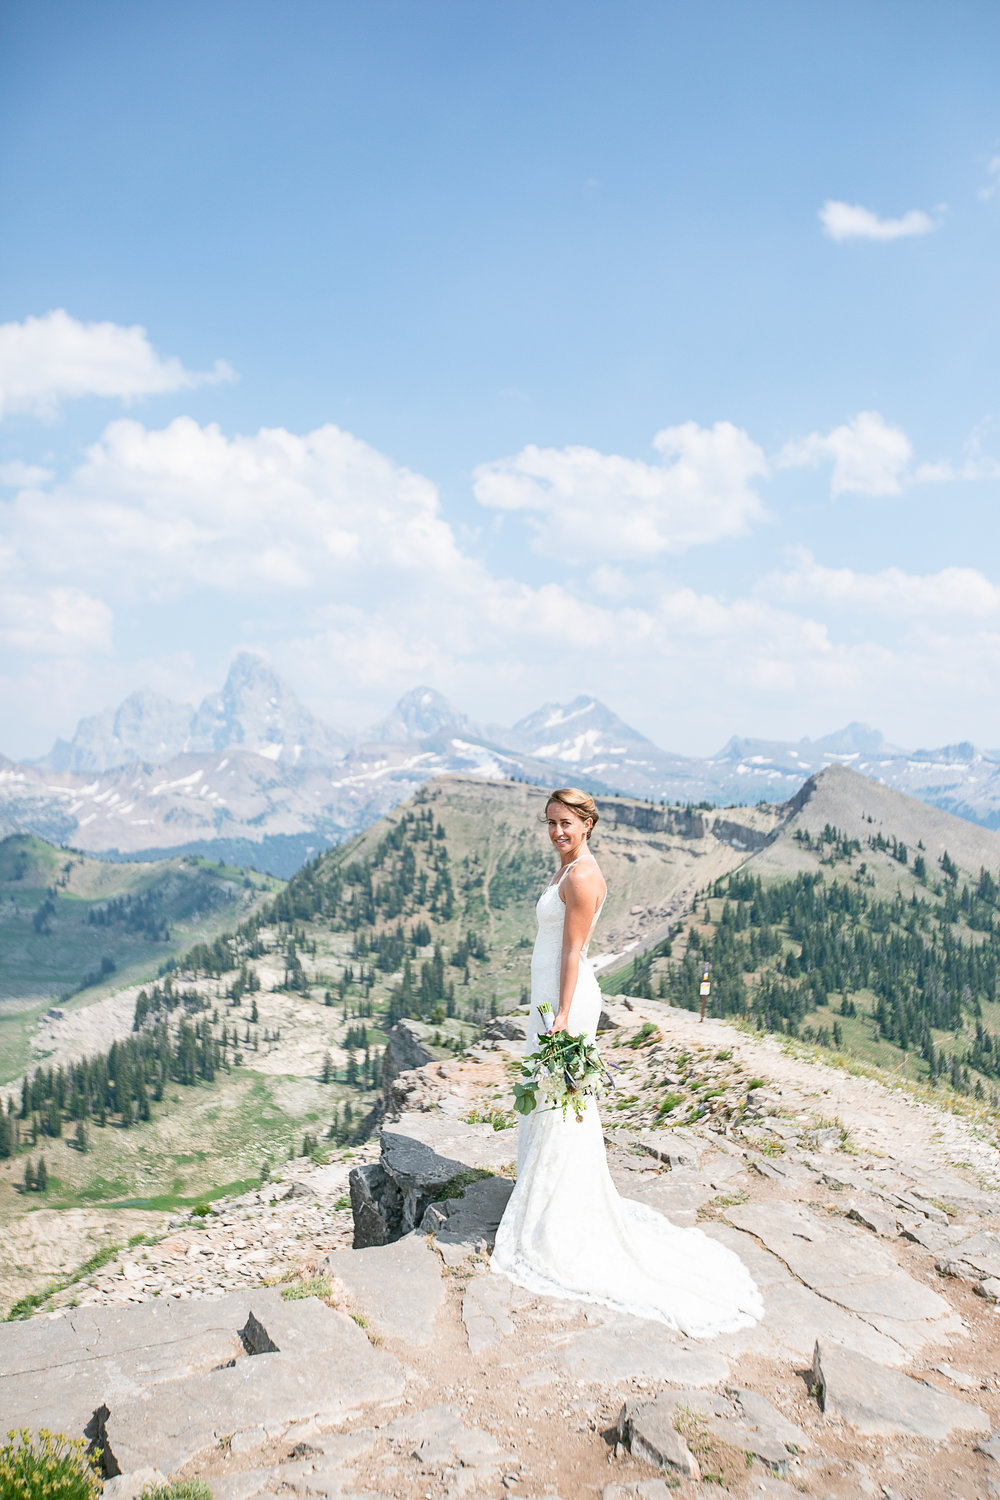 Pat and Shannon Grand Targhee Wyoming Wedding Grand Teton National Park-18.jpg